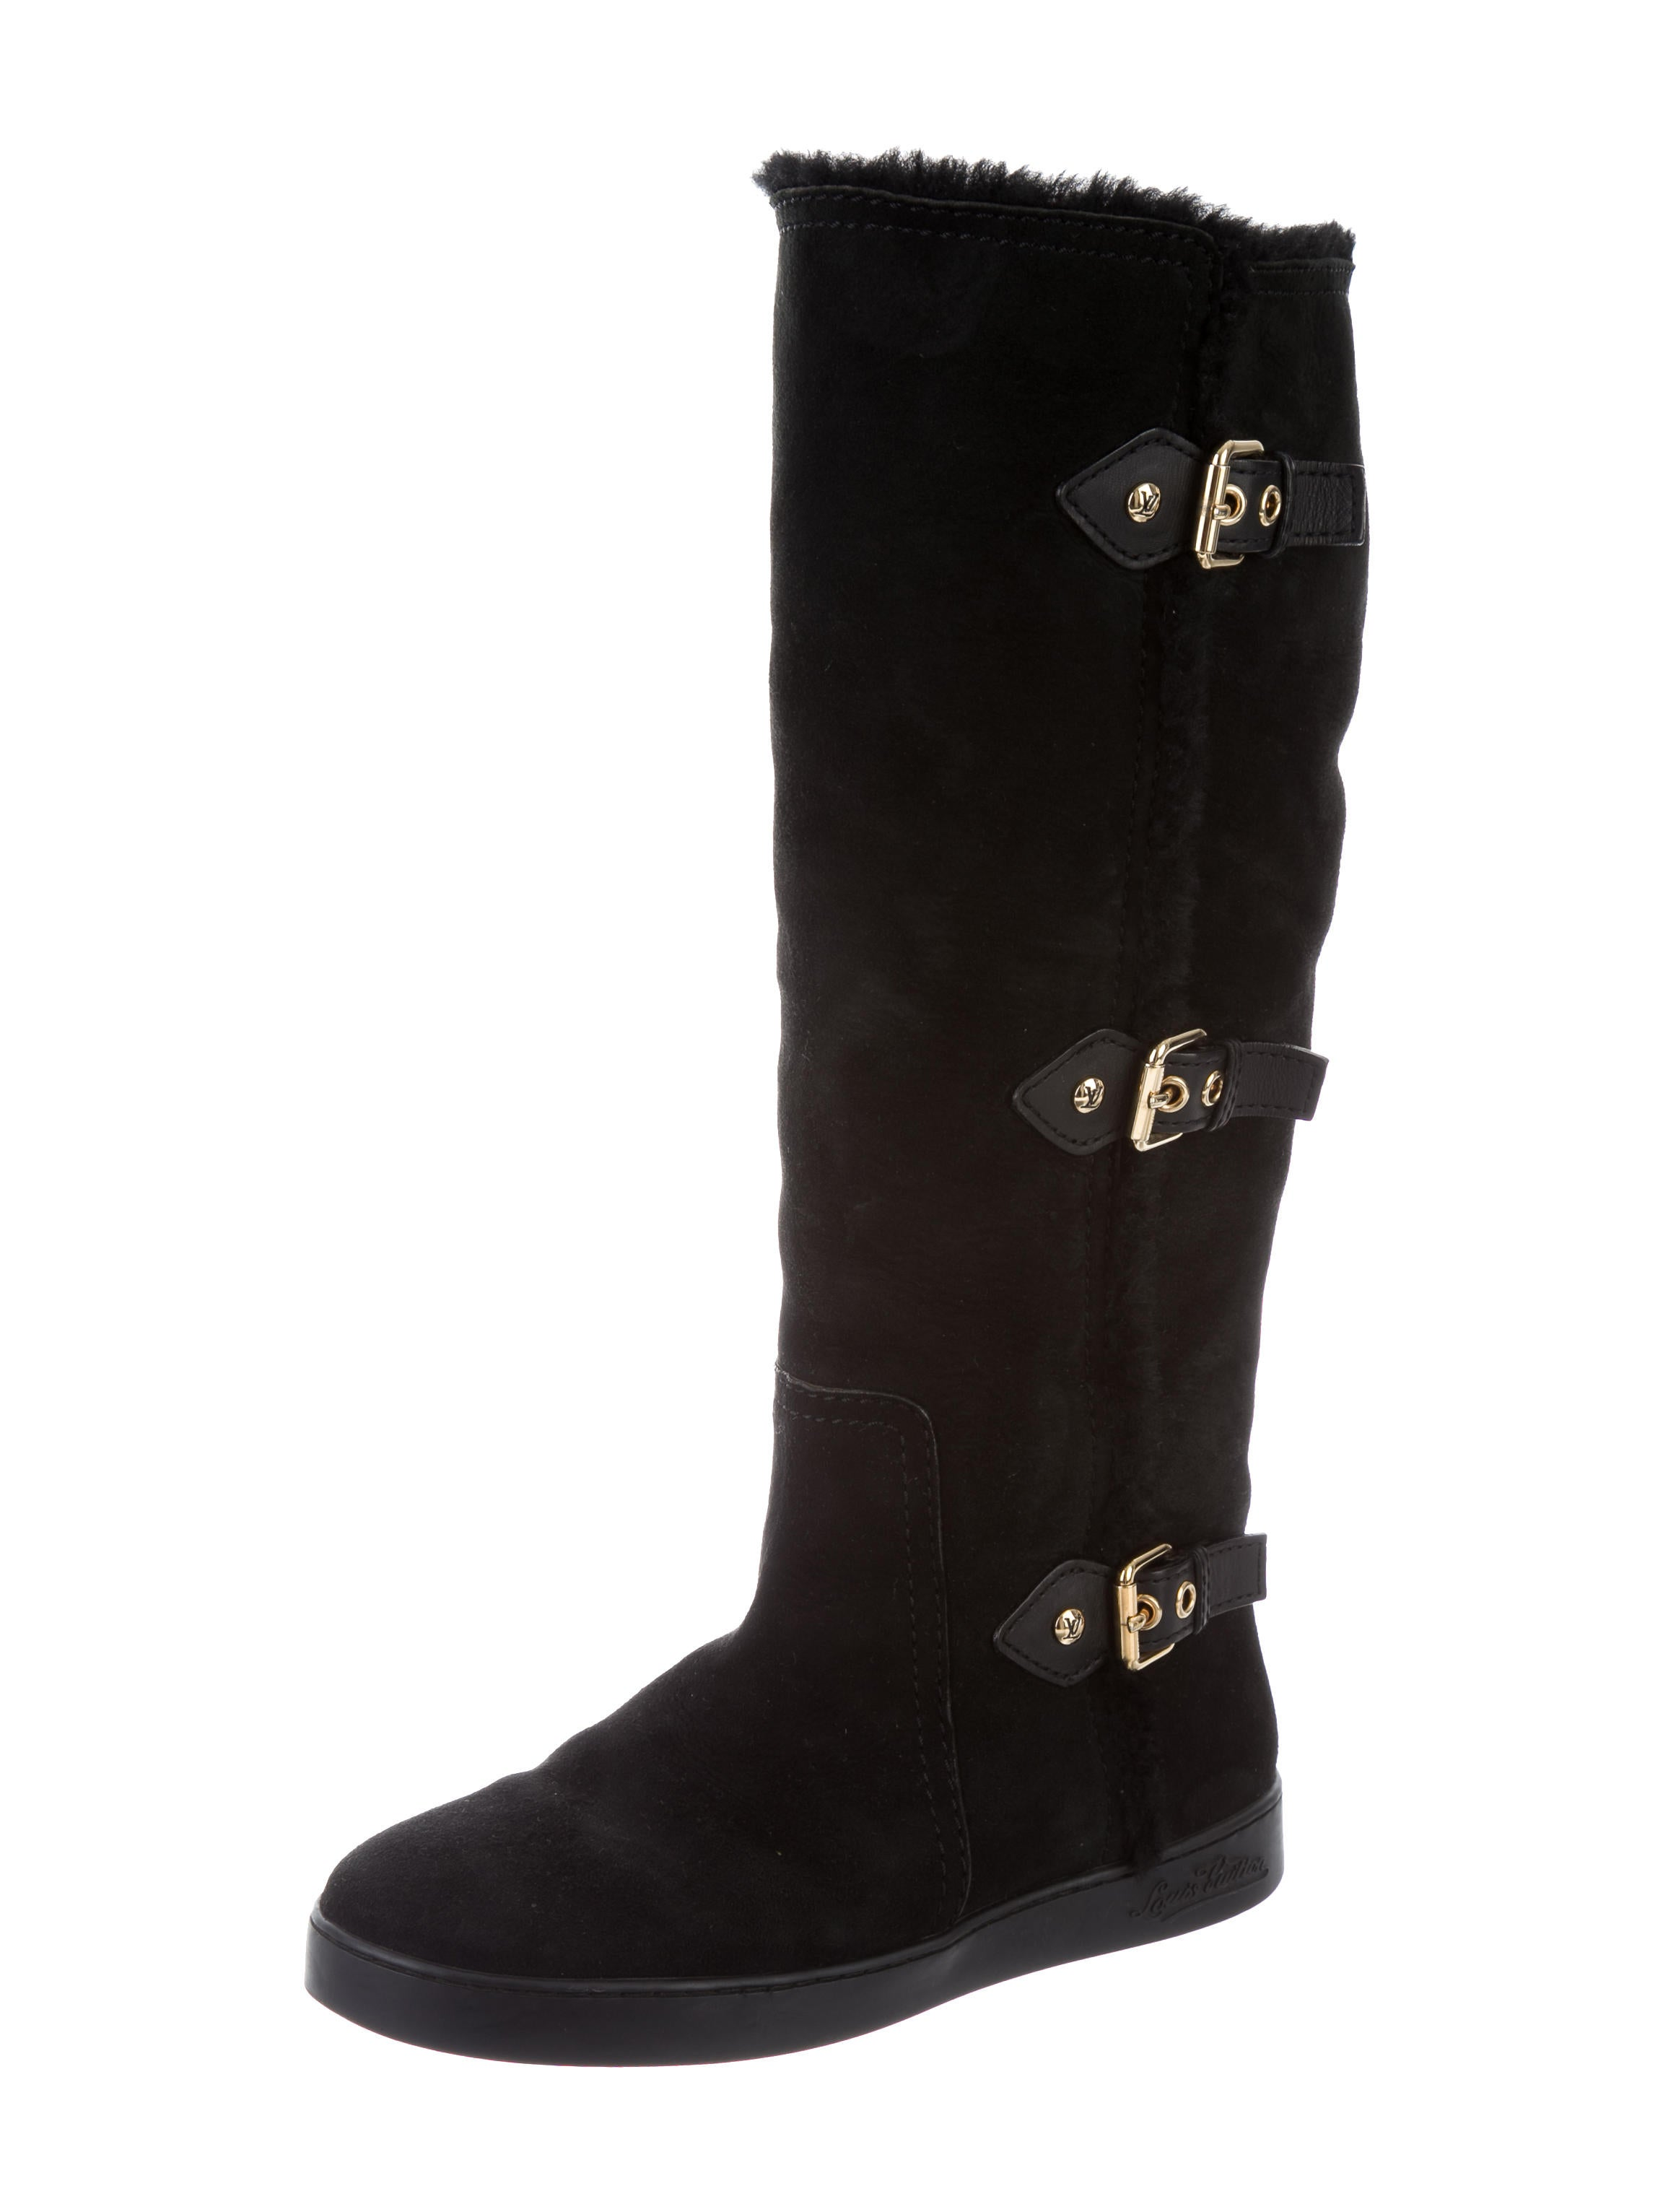 louis vuitton shearling knee high boots shoes